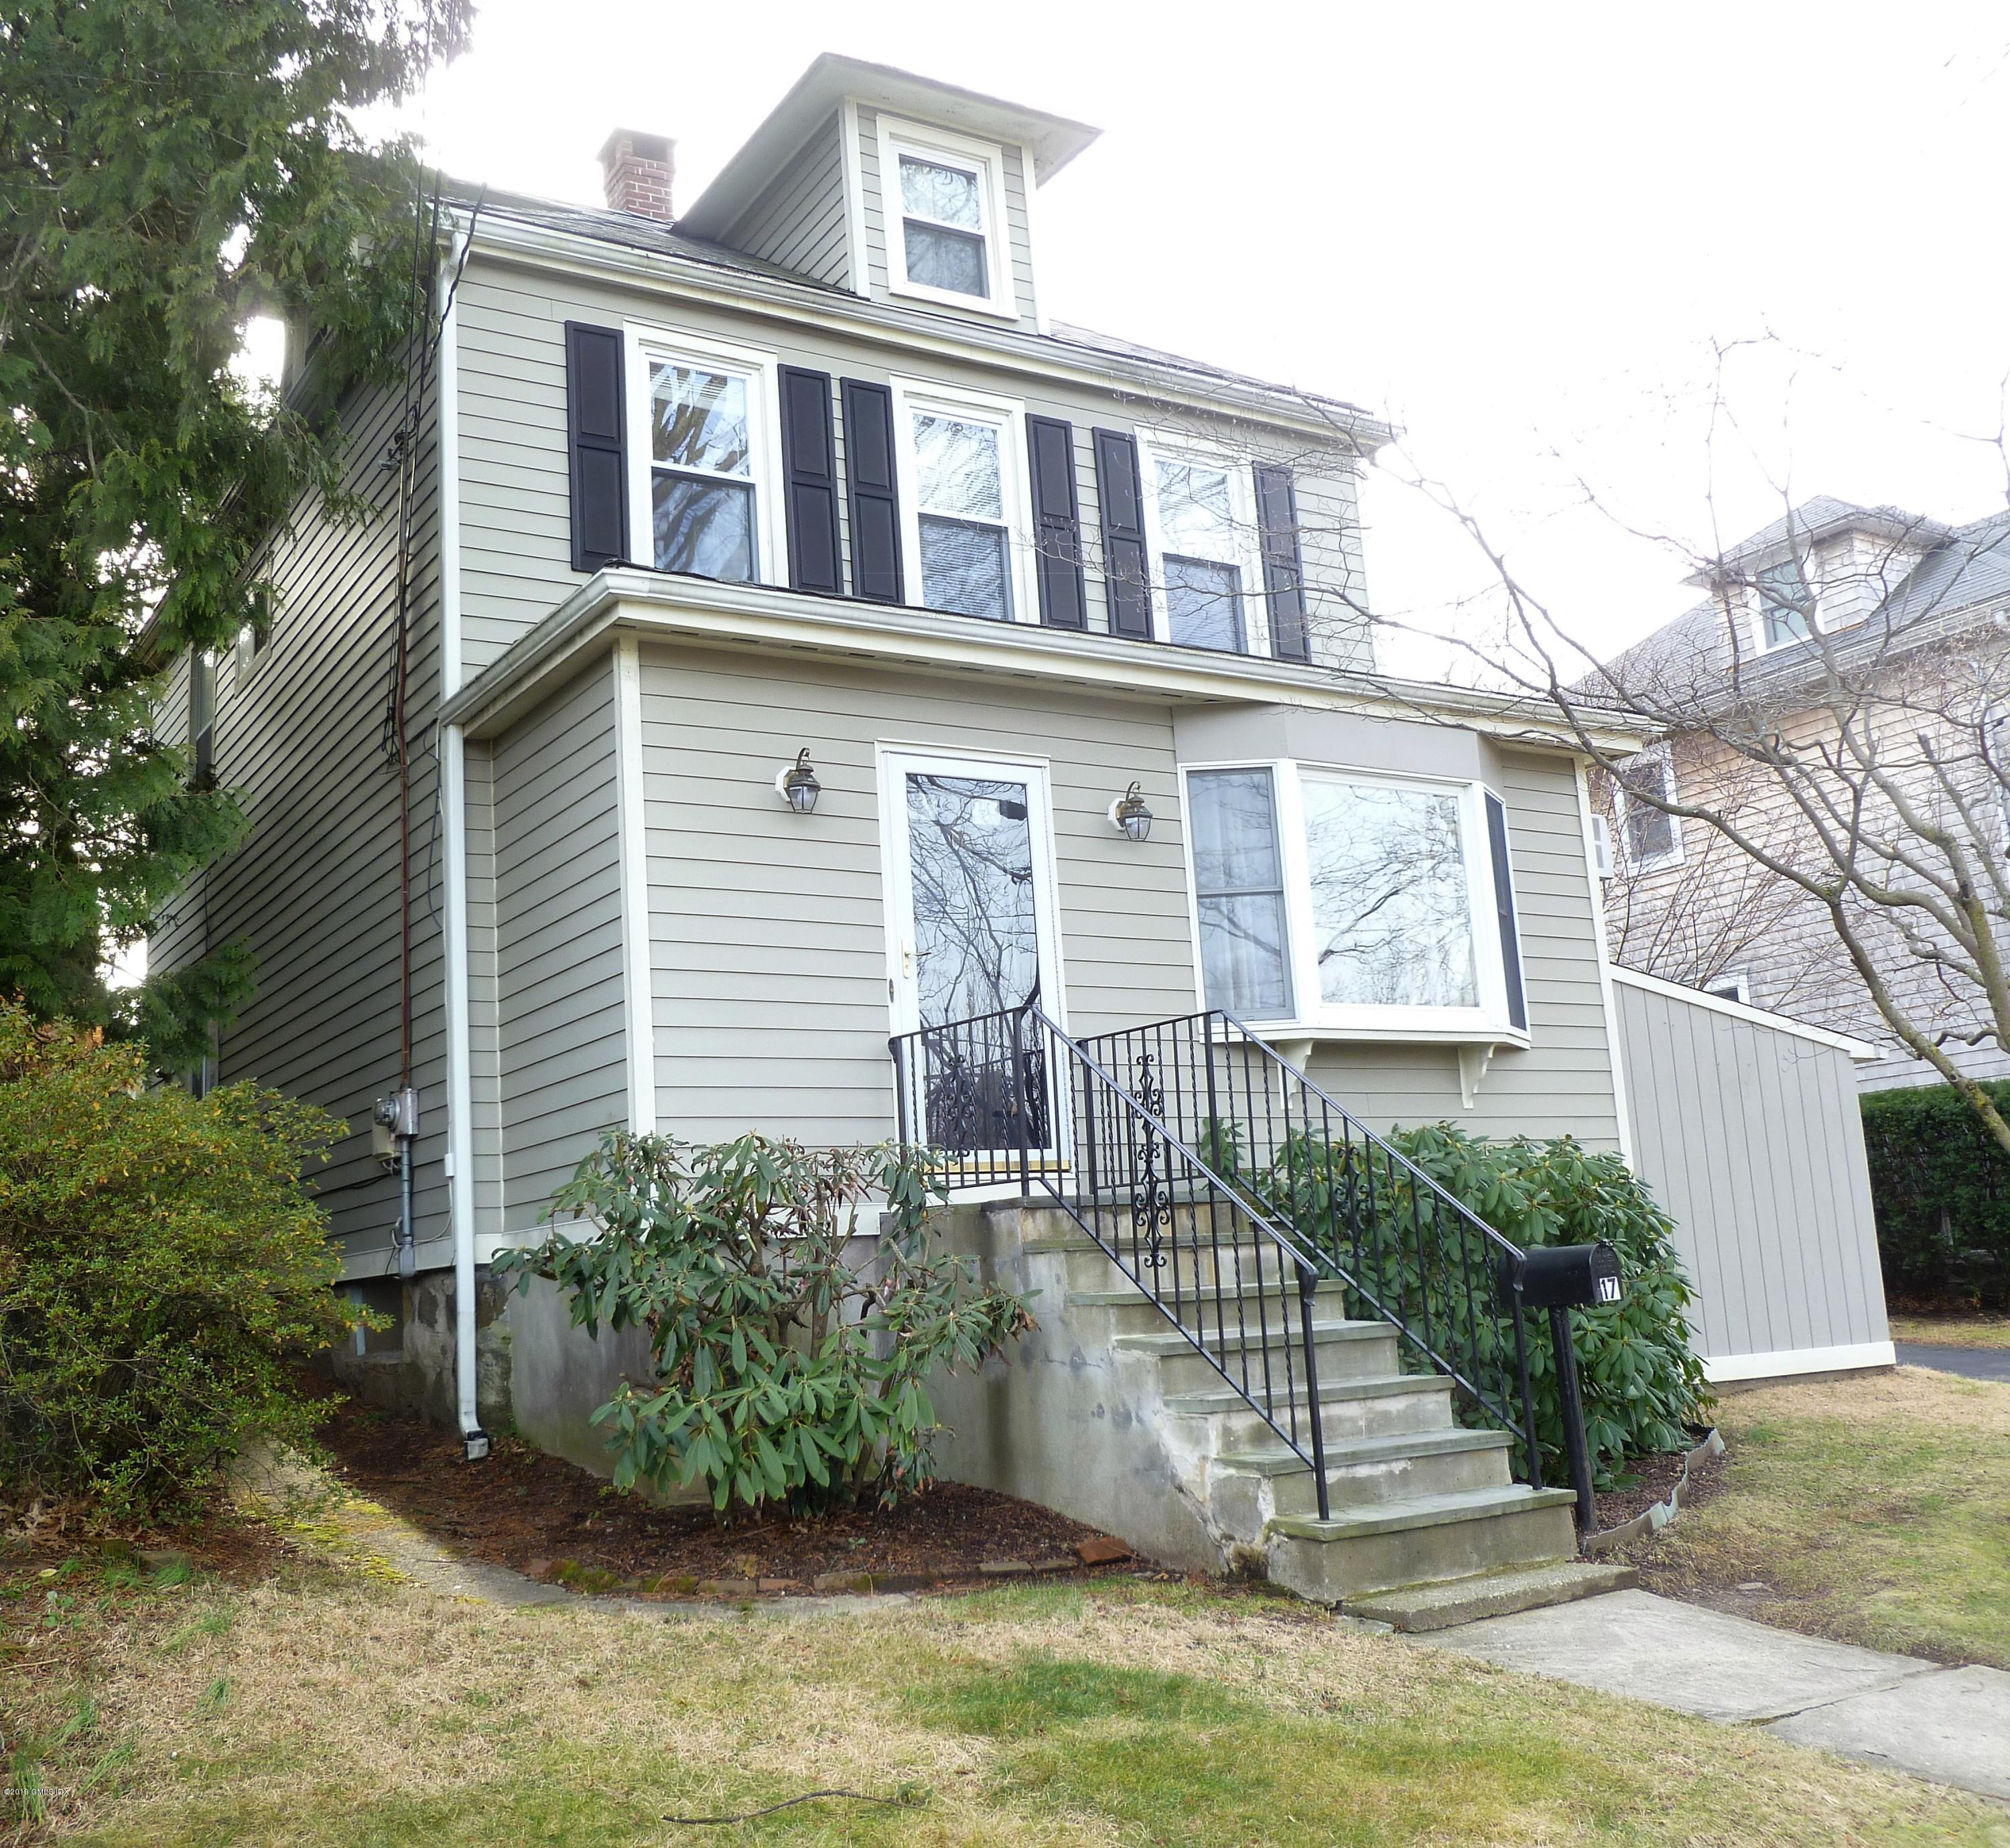 17 Richland Road,Greenwich,Connecticut 06830,3 Bedrooms Bedrooms,1 BathroomBathrooms,Single family,Richland,105161